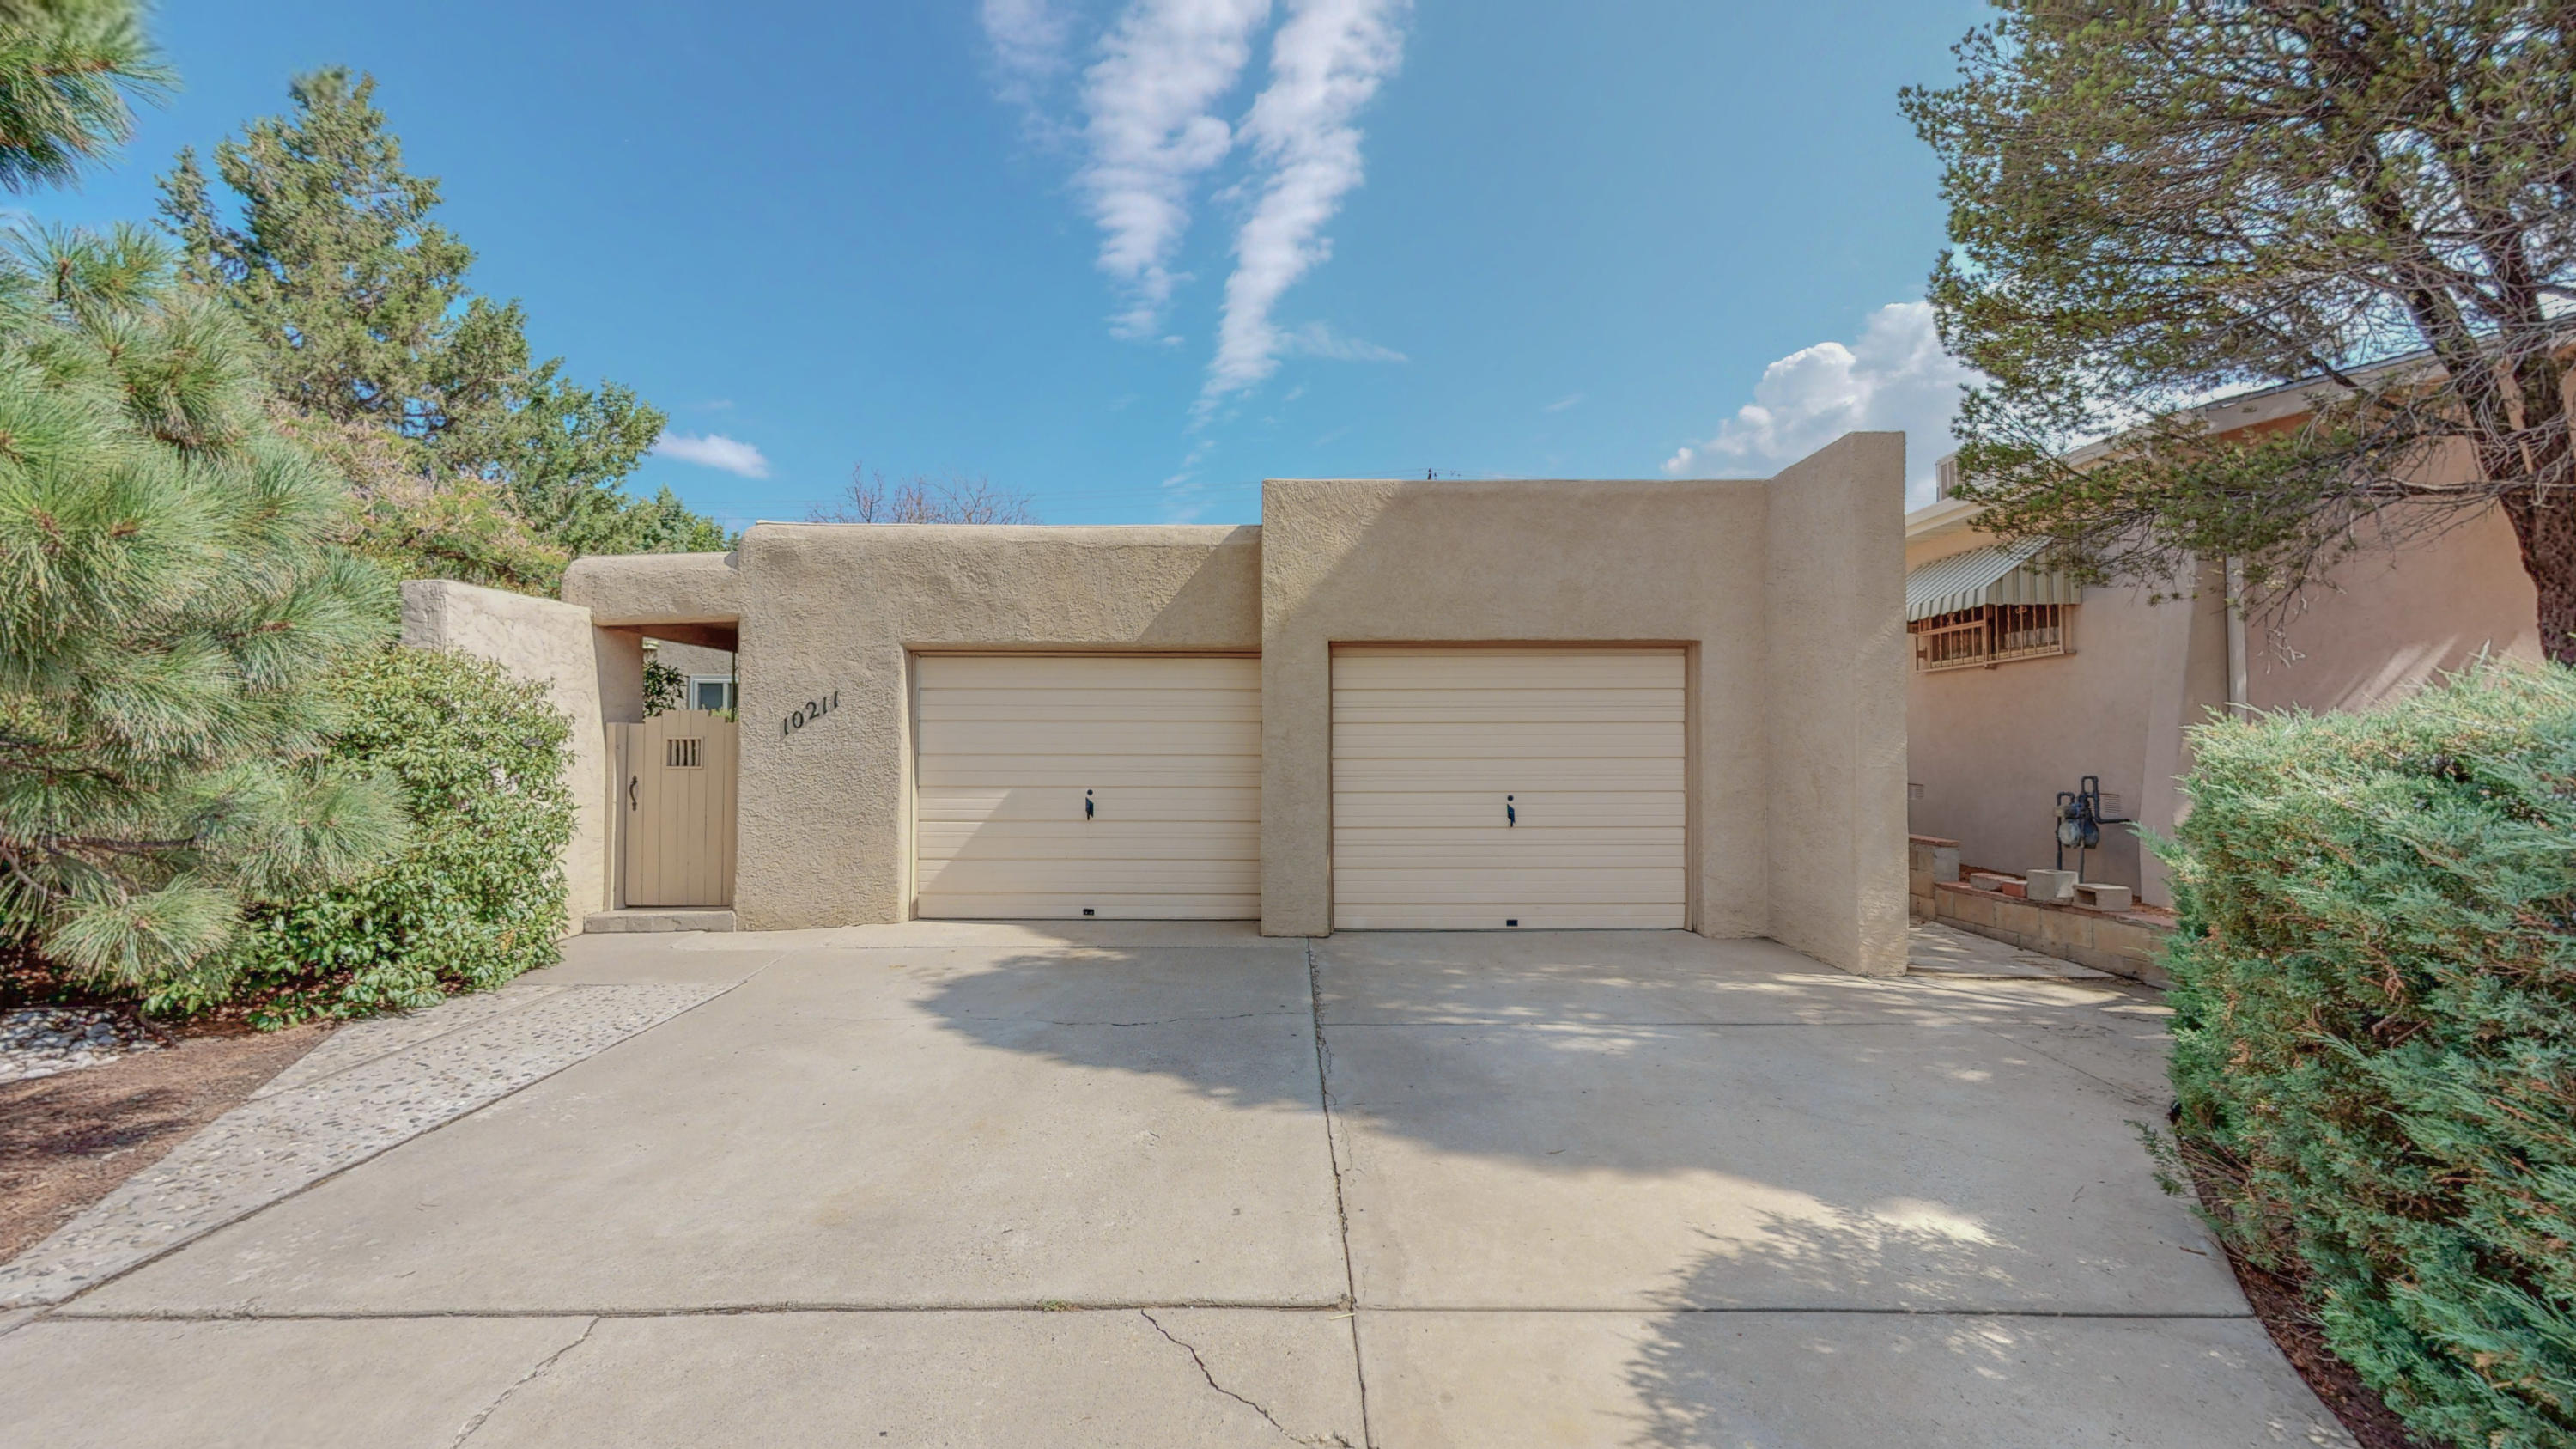 Don;t miss out on this one in NE Heights!. Meticulously  maintained home is ready to move in. New roof 2019,newer windows, new carpet and fresh paint.This would be a great first time home.  All you need to bring is your belongings.